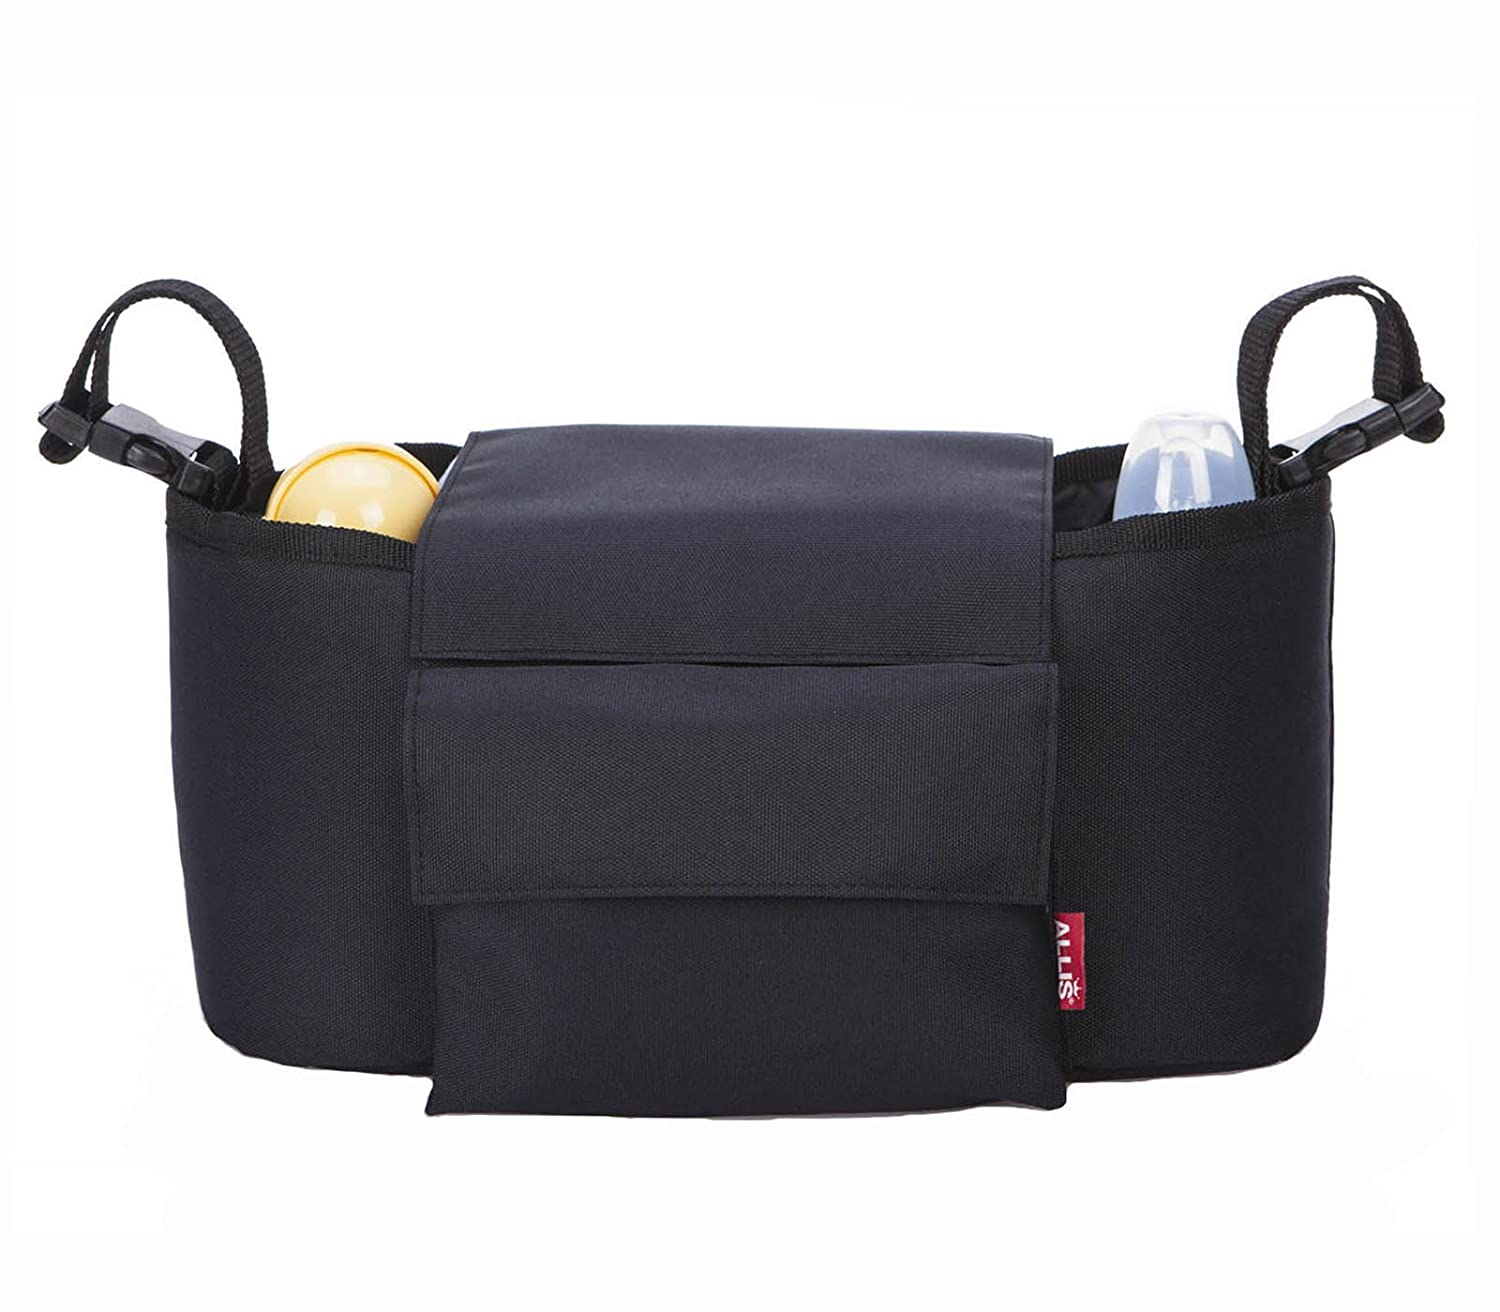 Allis 2-in-1 Buggy Organizer Baby Changing Bag (Black) CB05K